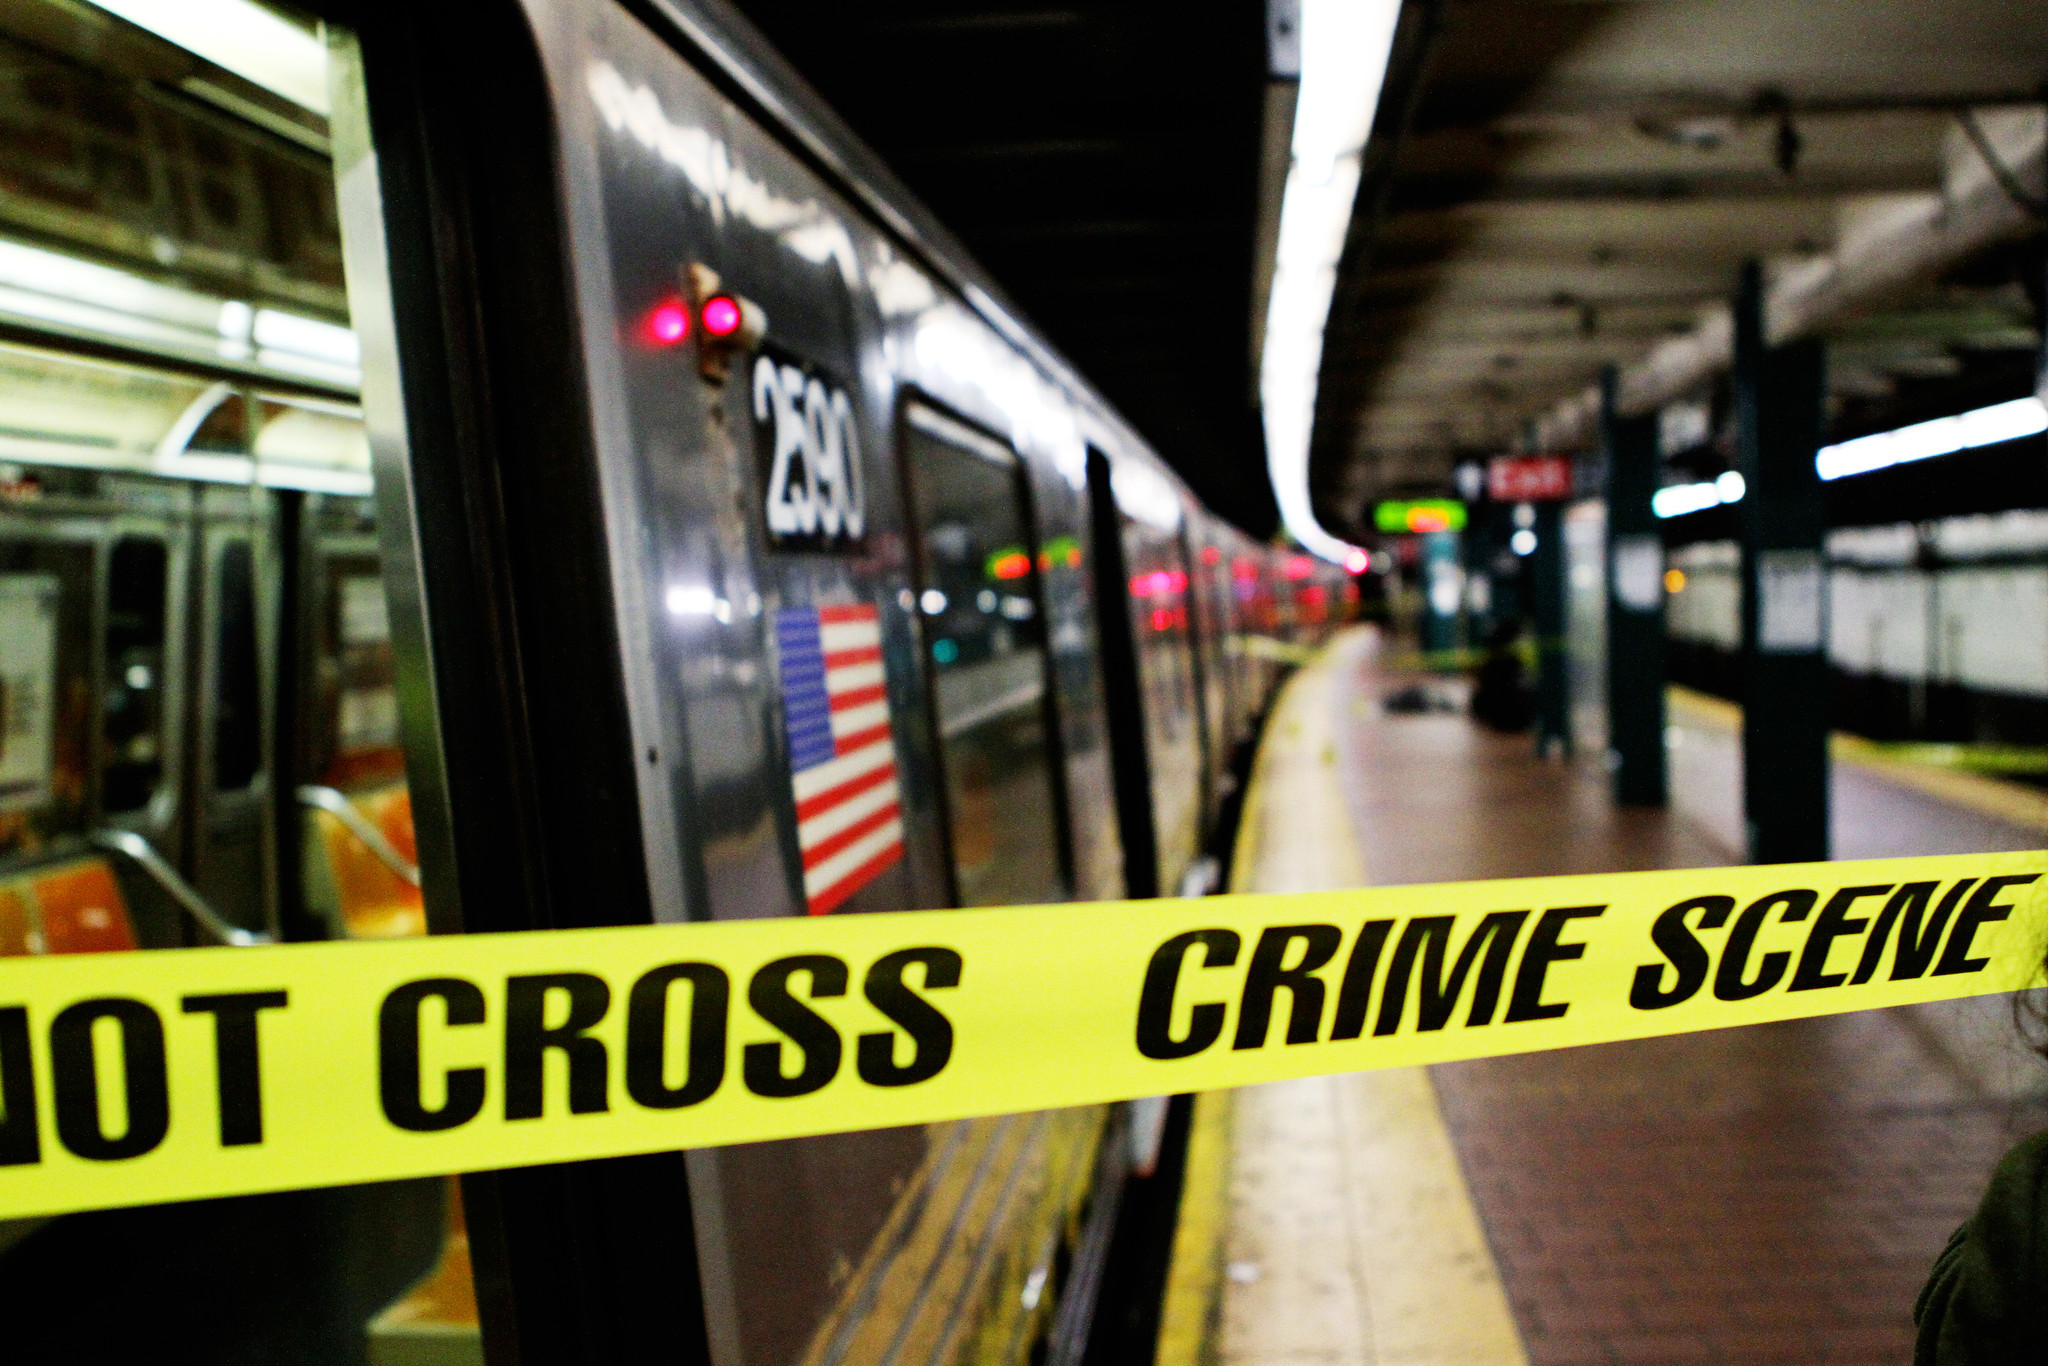 Man fatally struck by subway train in NYC's Herald Square